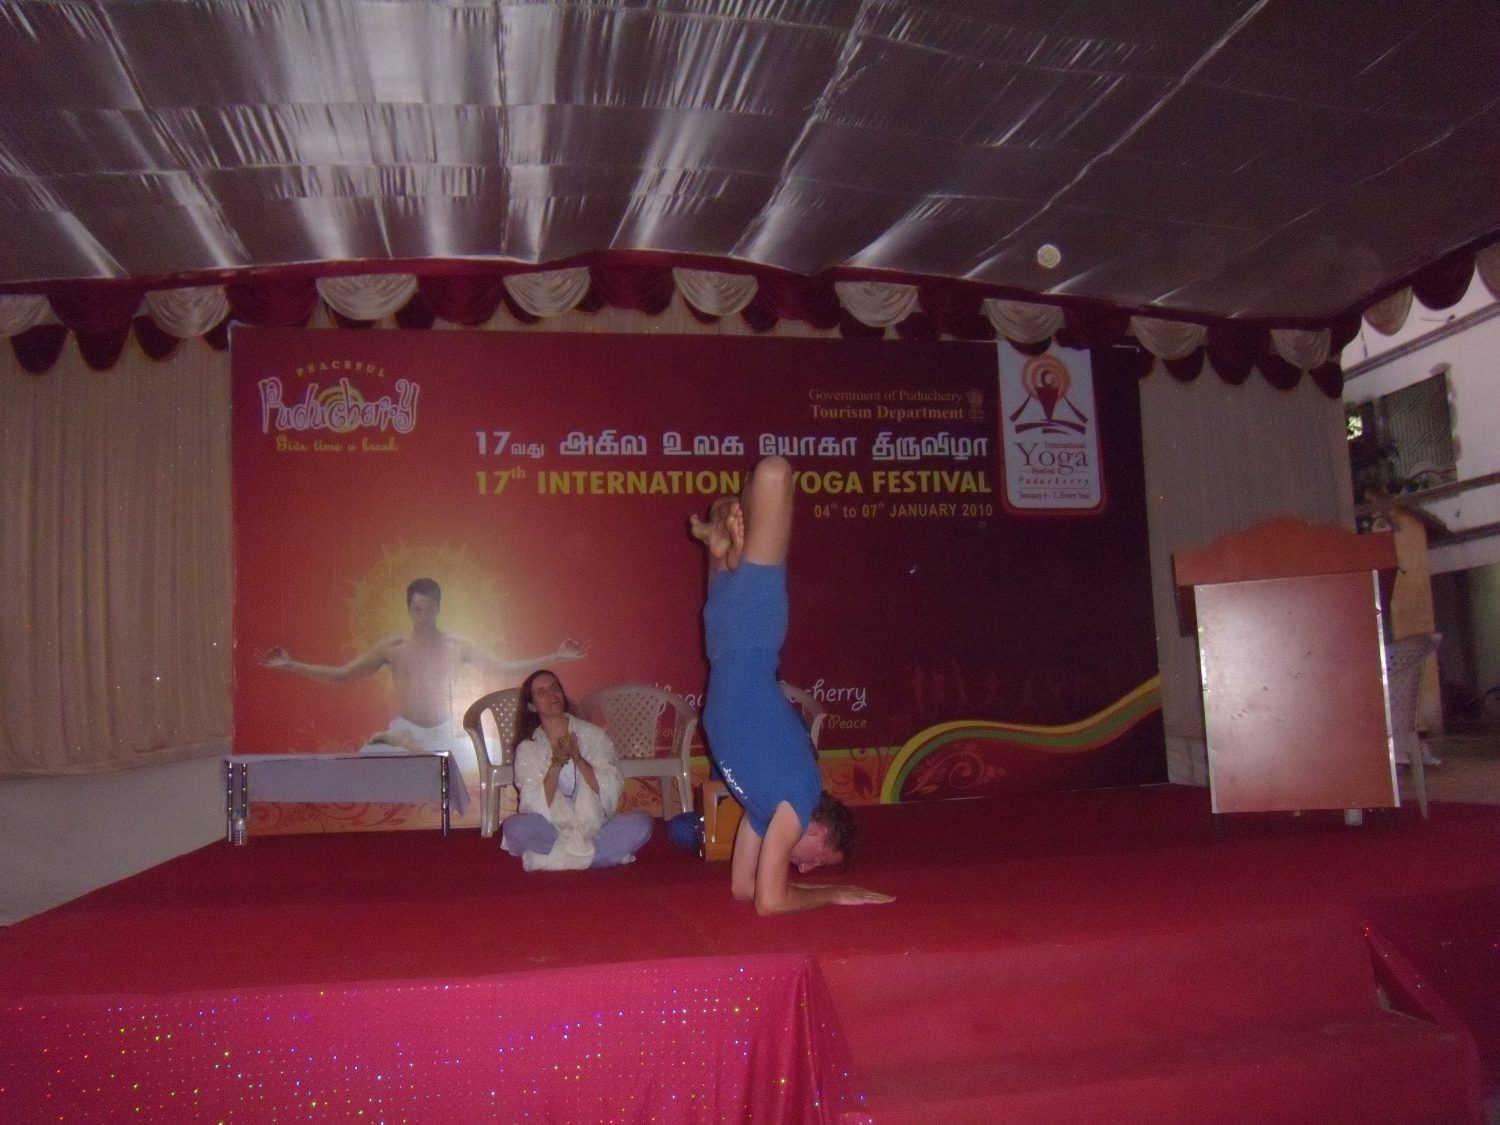 17th International Yoga Festival, Puducherry, Índia - 2010, January